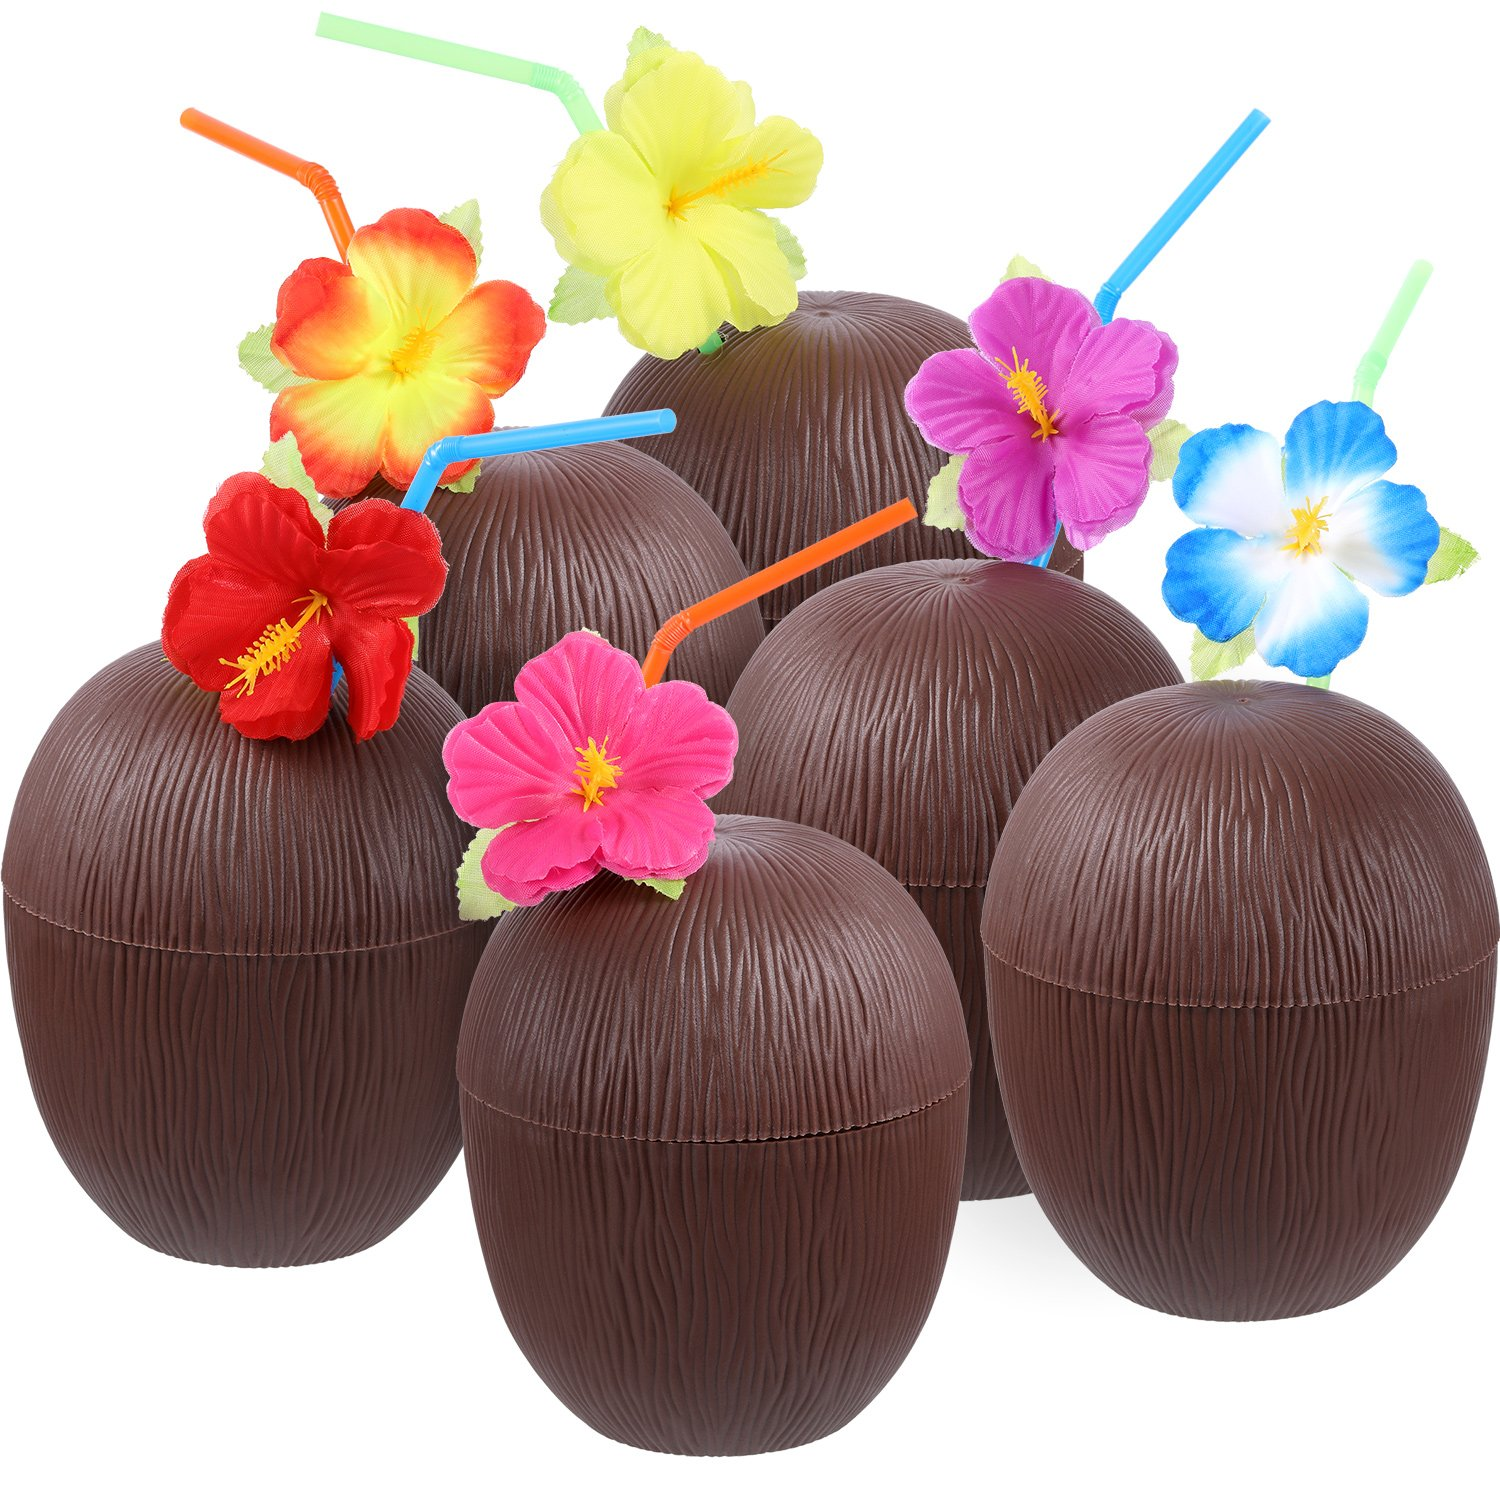 Gejoy 12 Pieces Hawaiian Luau Plastic Coconut Cups Hibiscus Flower Bendable Straws Beach Theme Party Supplies